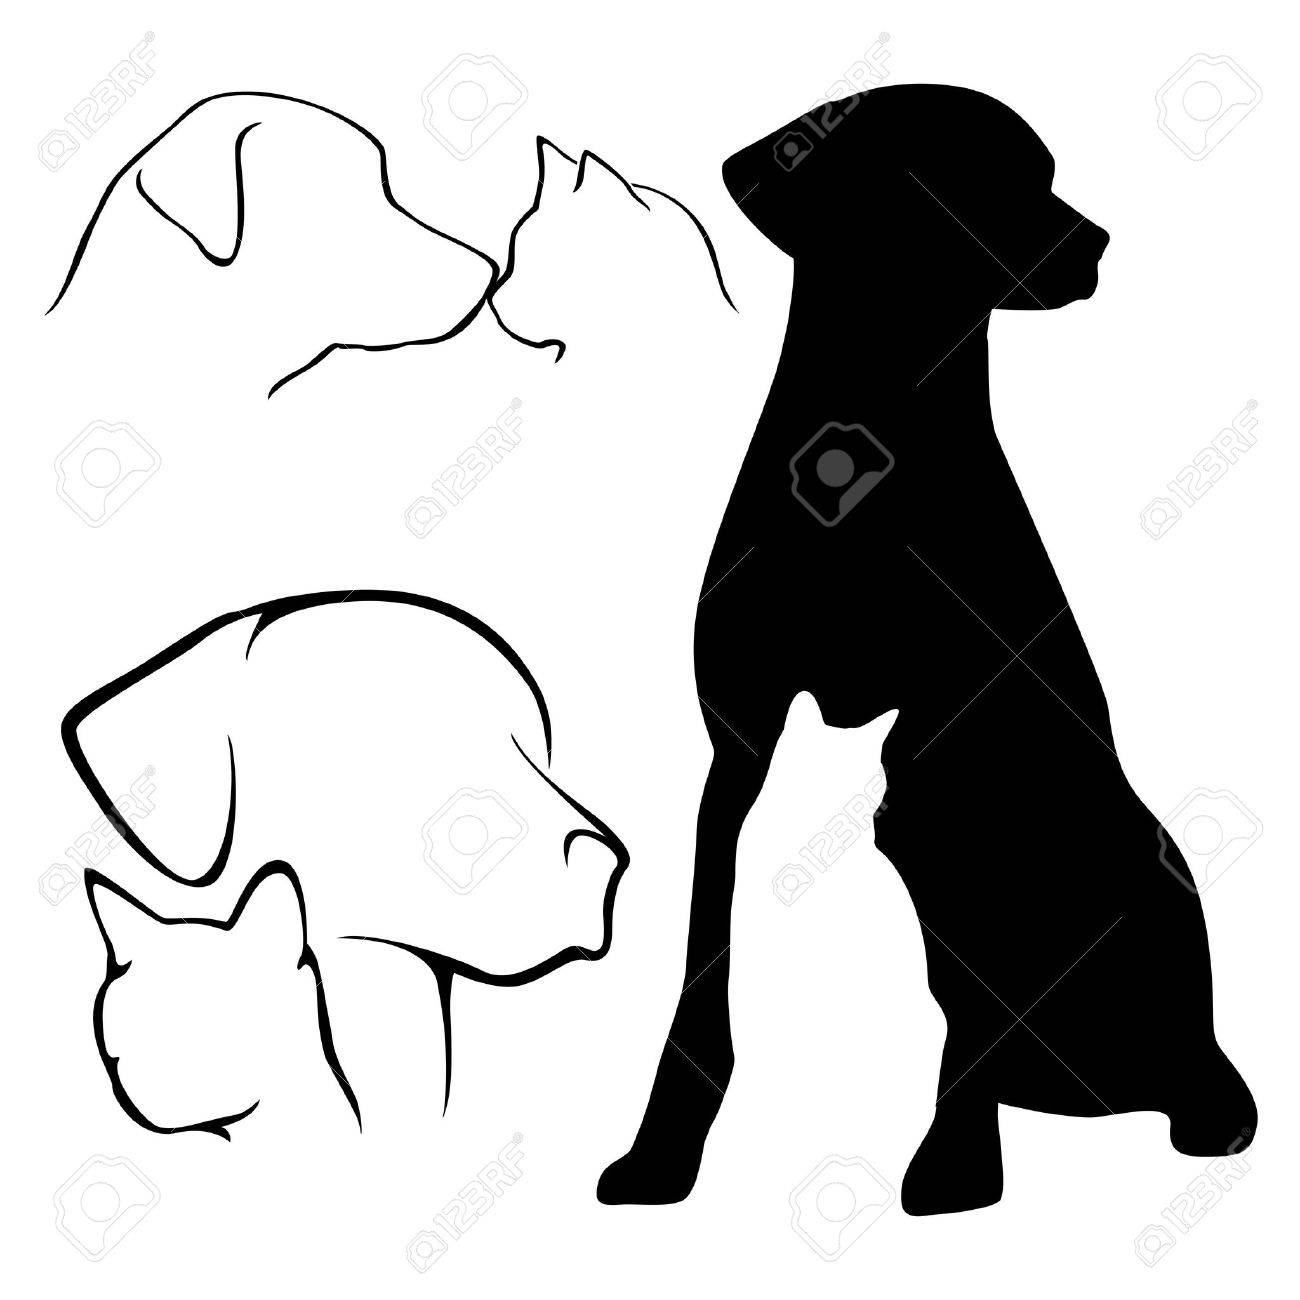 Dog & Cat Silhouettes Stock Vector - 12192229